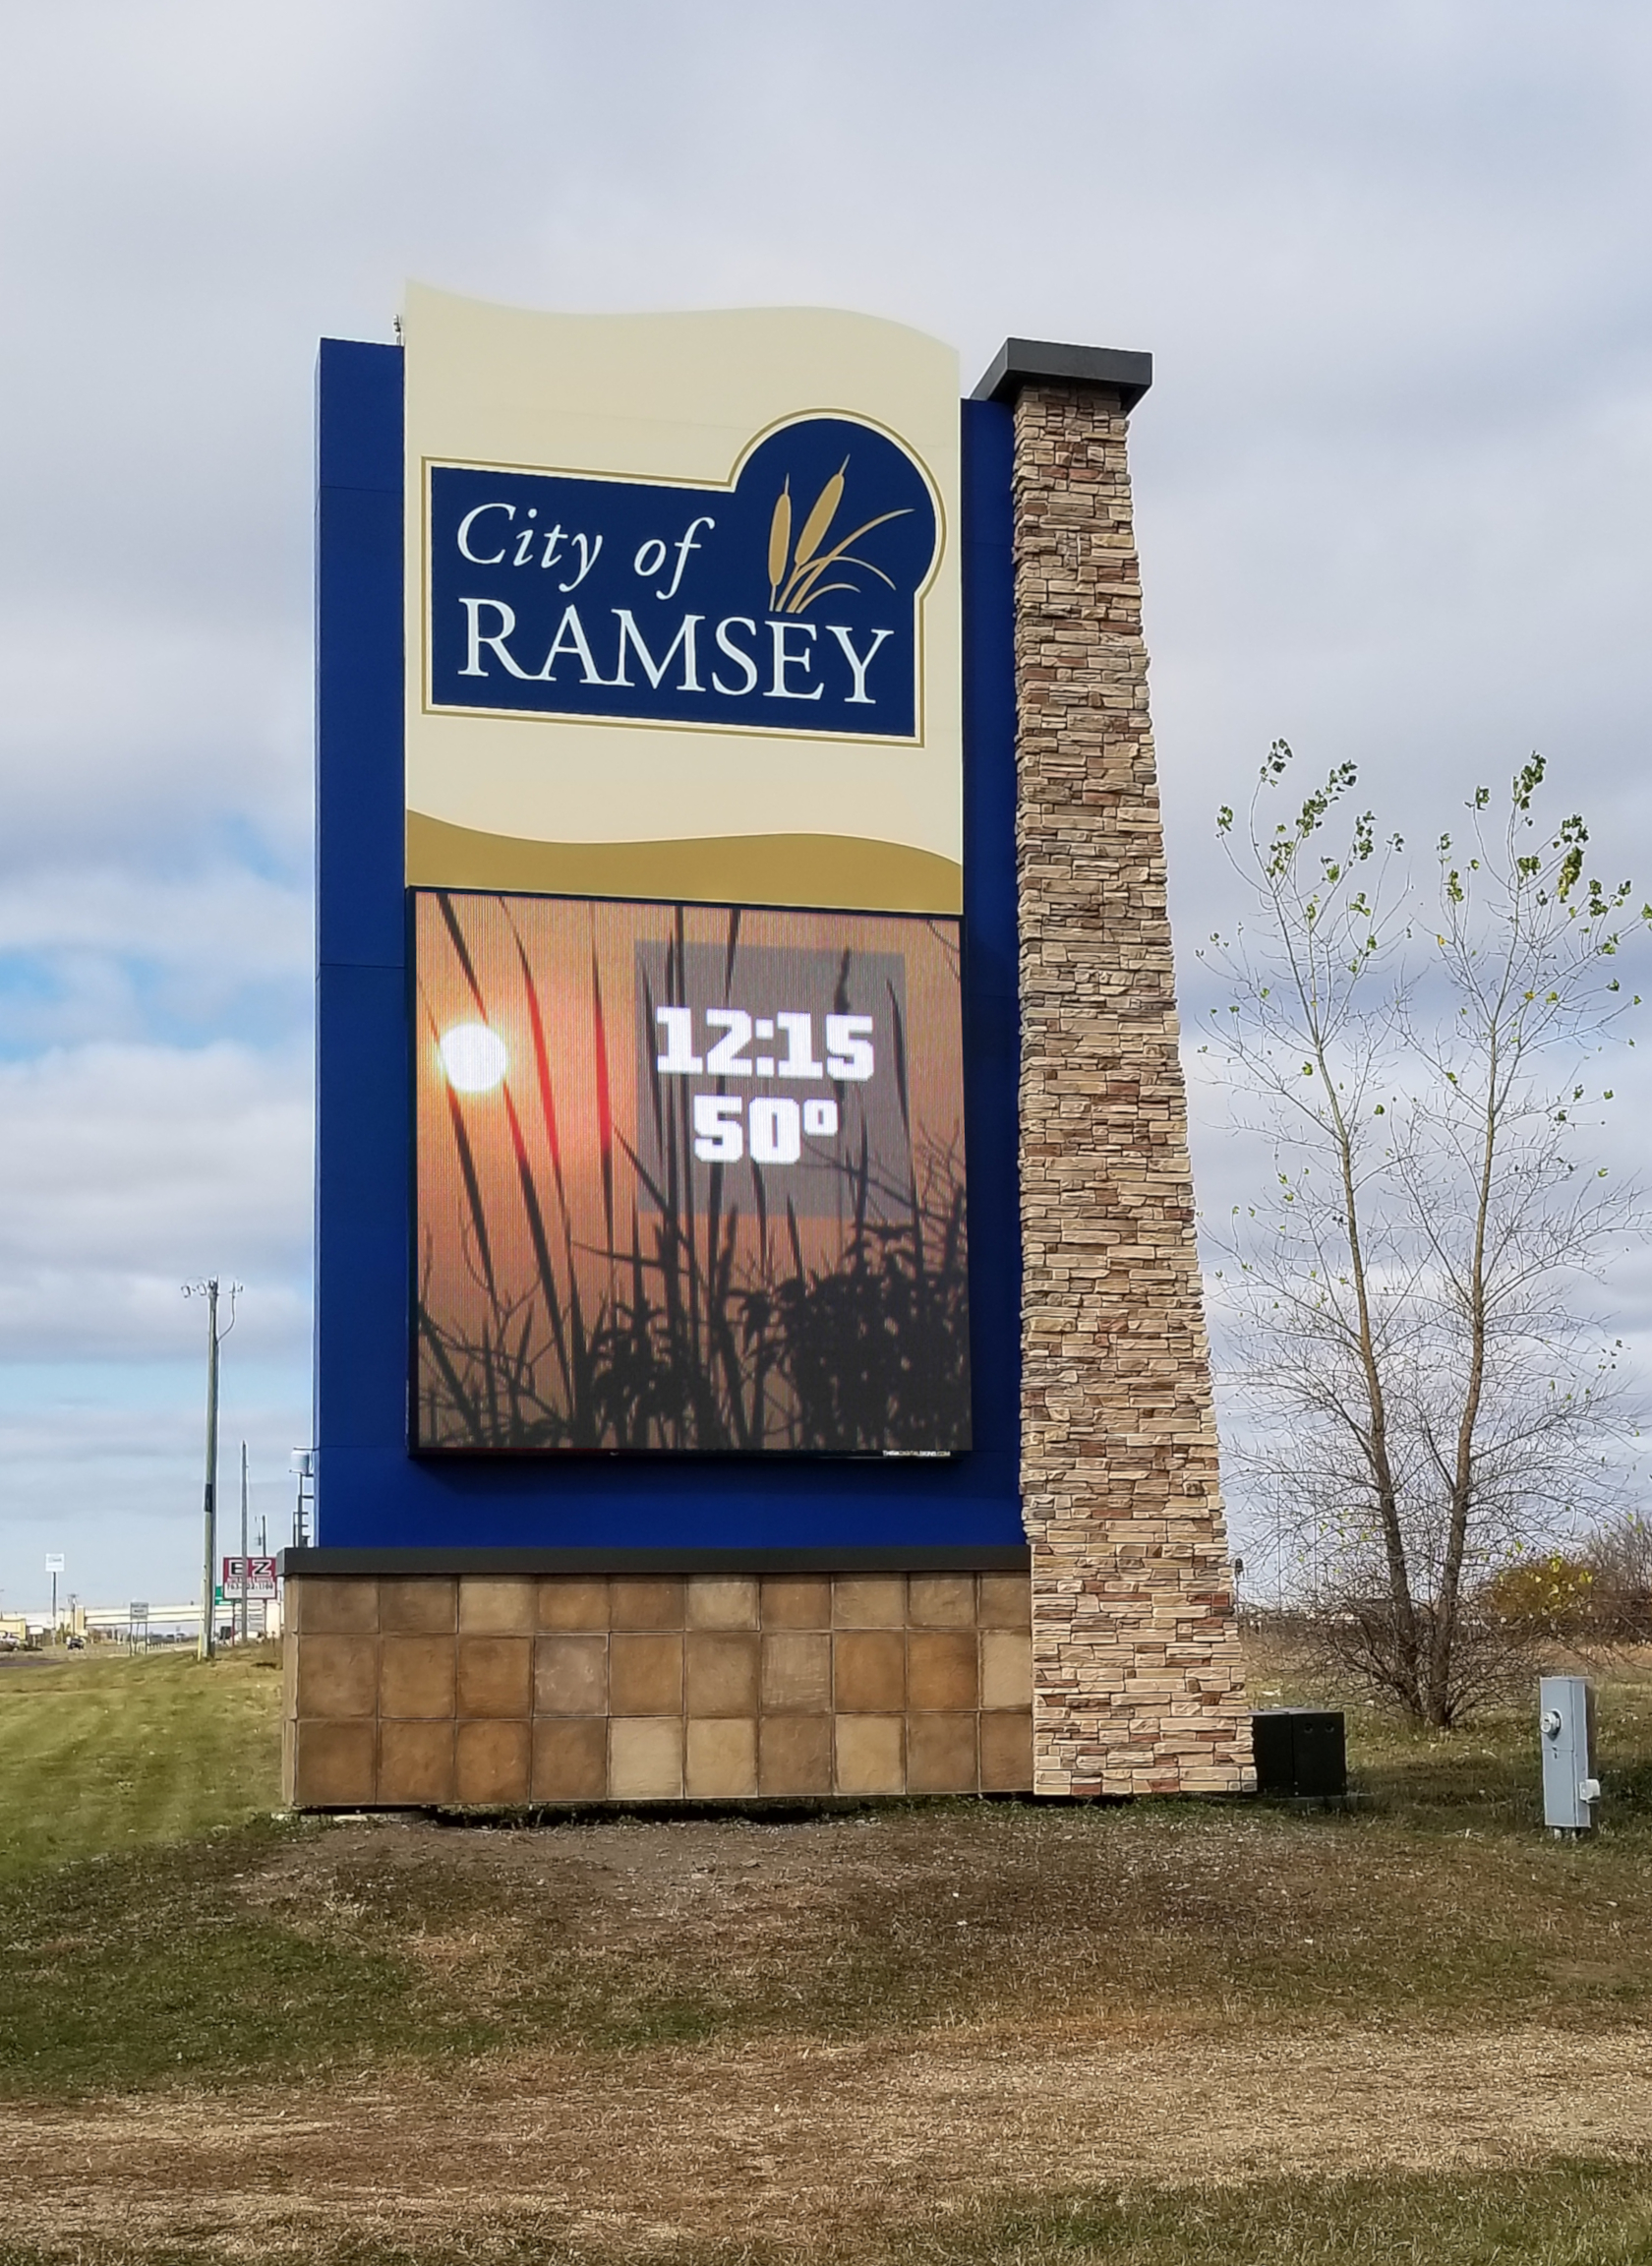 City of Ramsey Digital Sign After Renovation